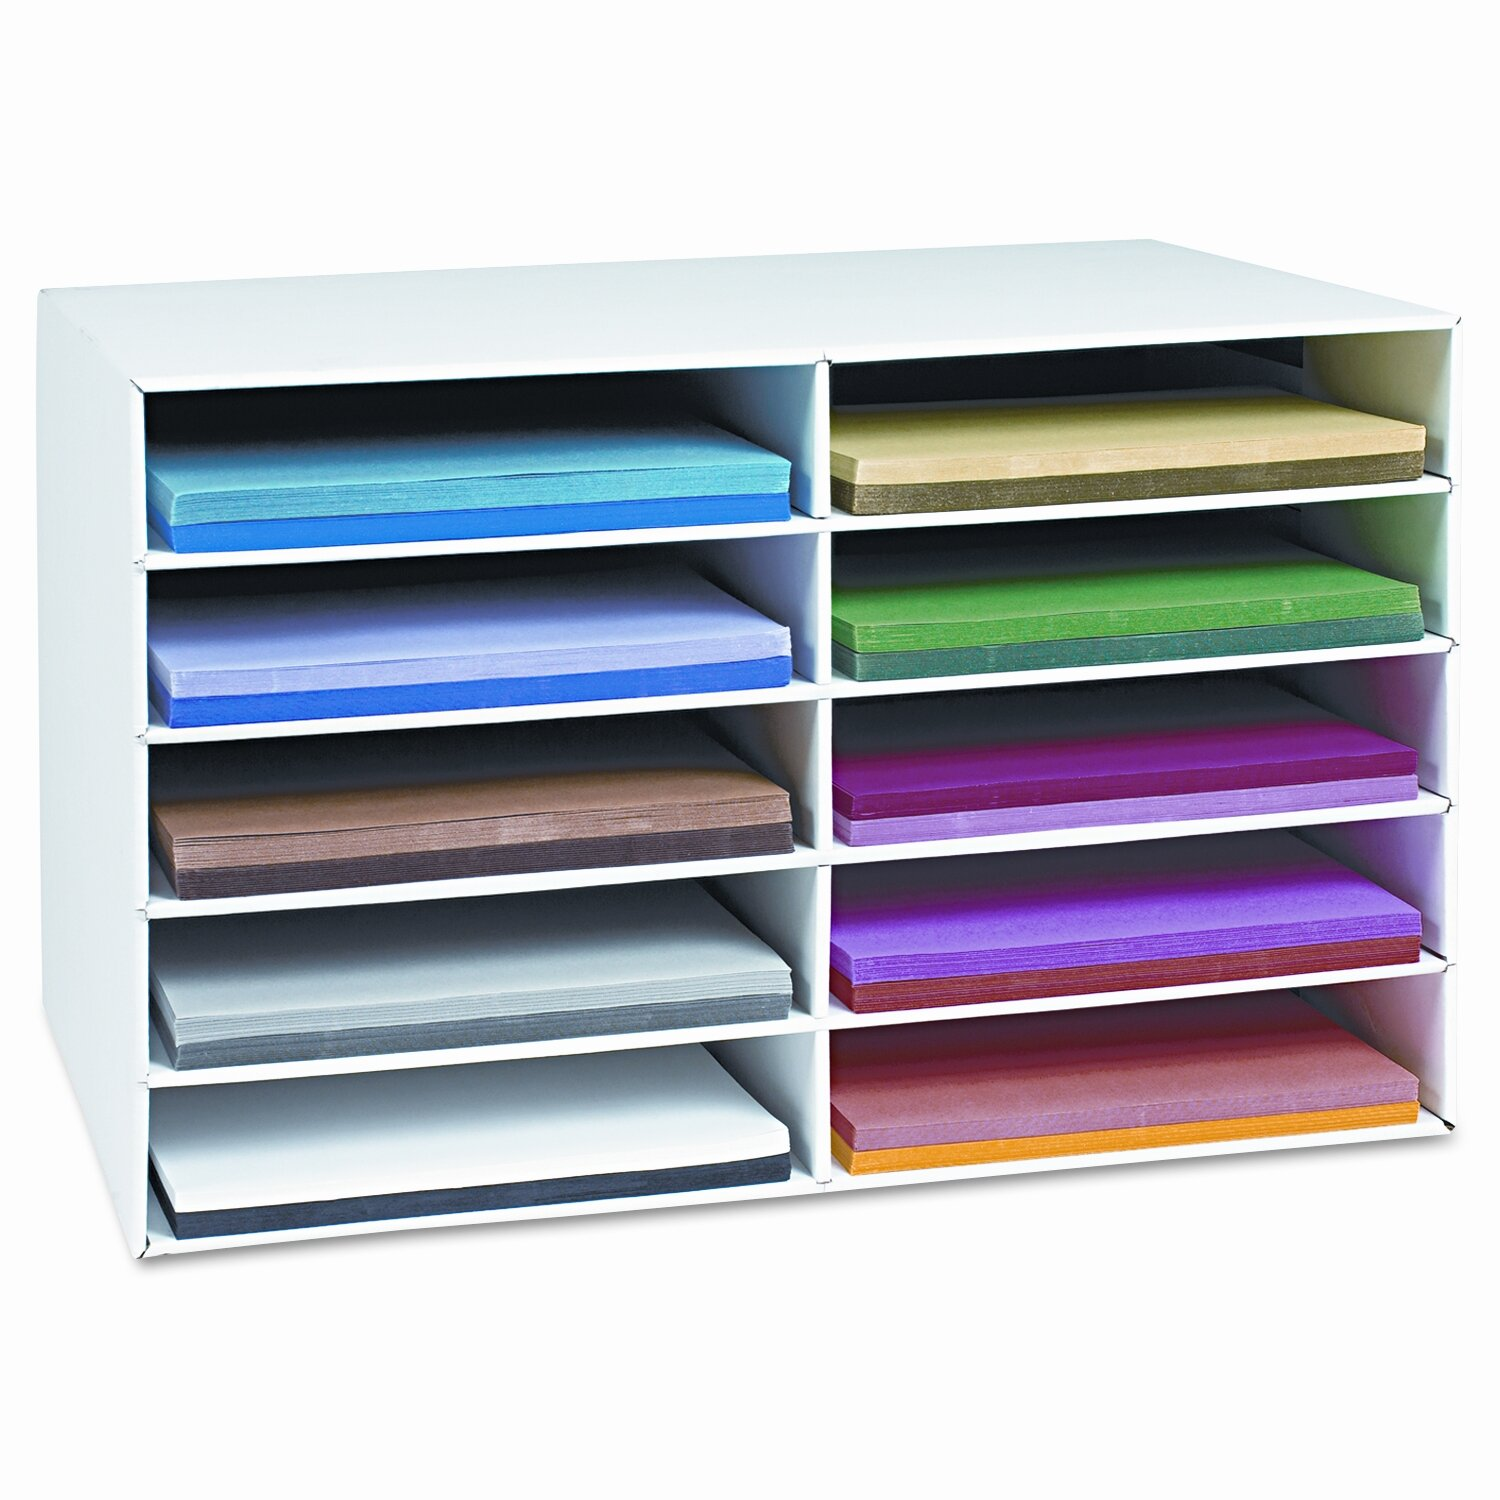 pacon paper Shop overstockcom and find the best online deals on everything from pacon, paper free shipping on orders over $45 at overstockcom.